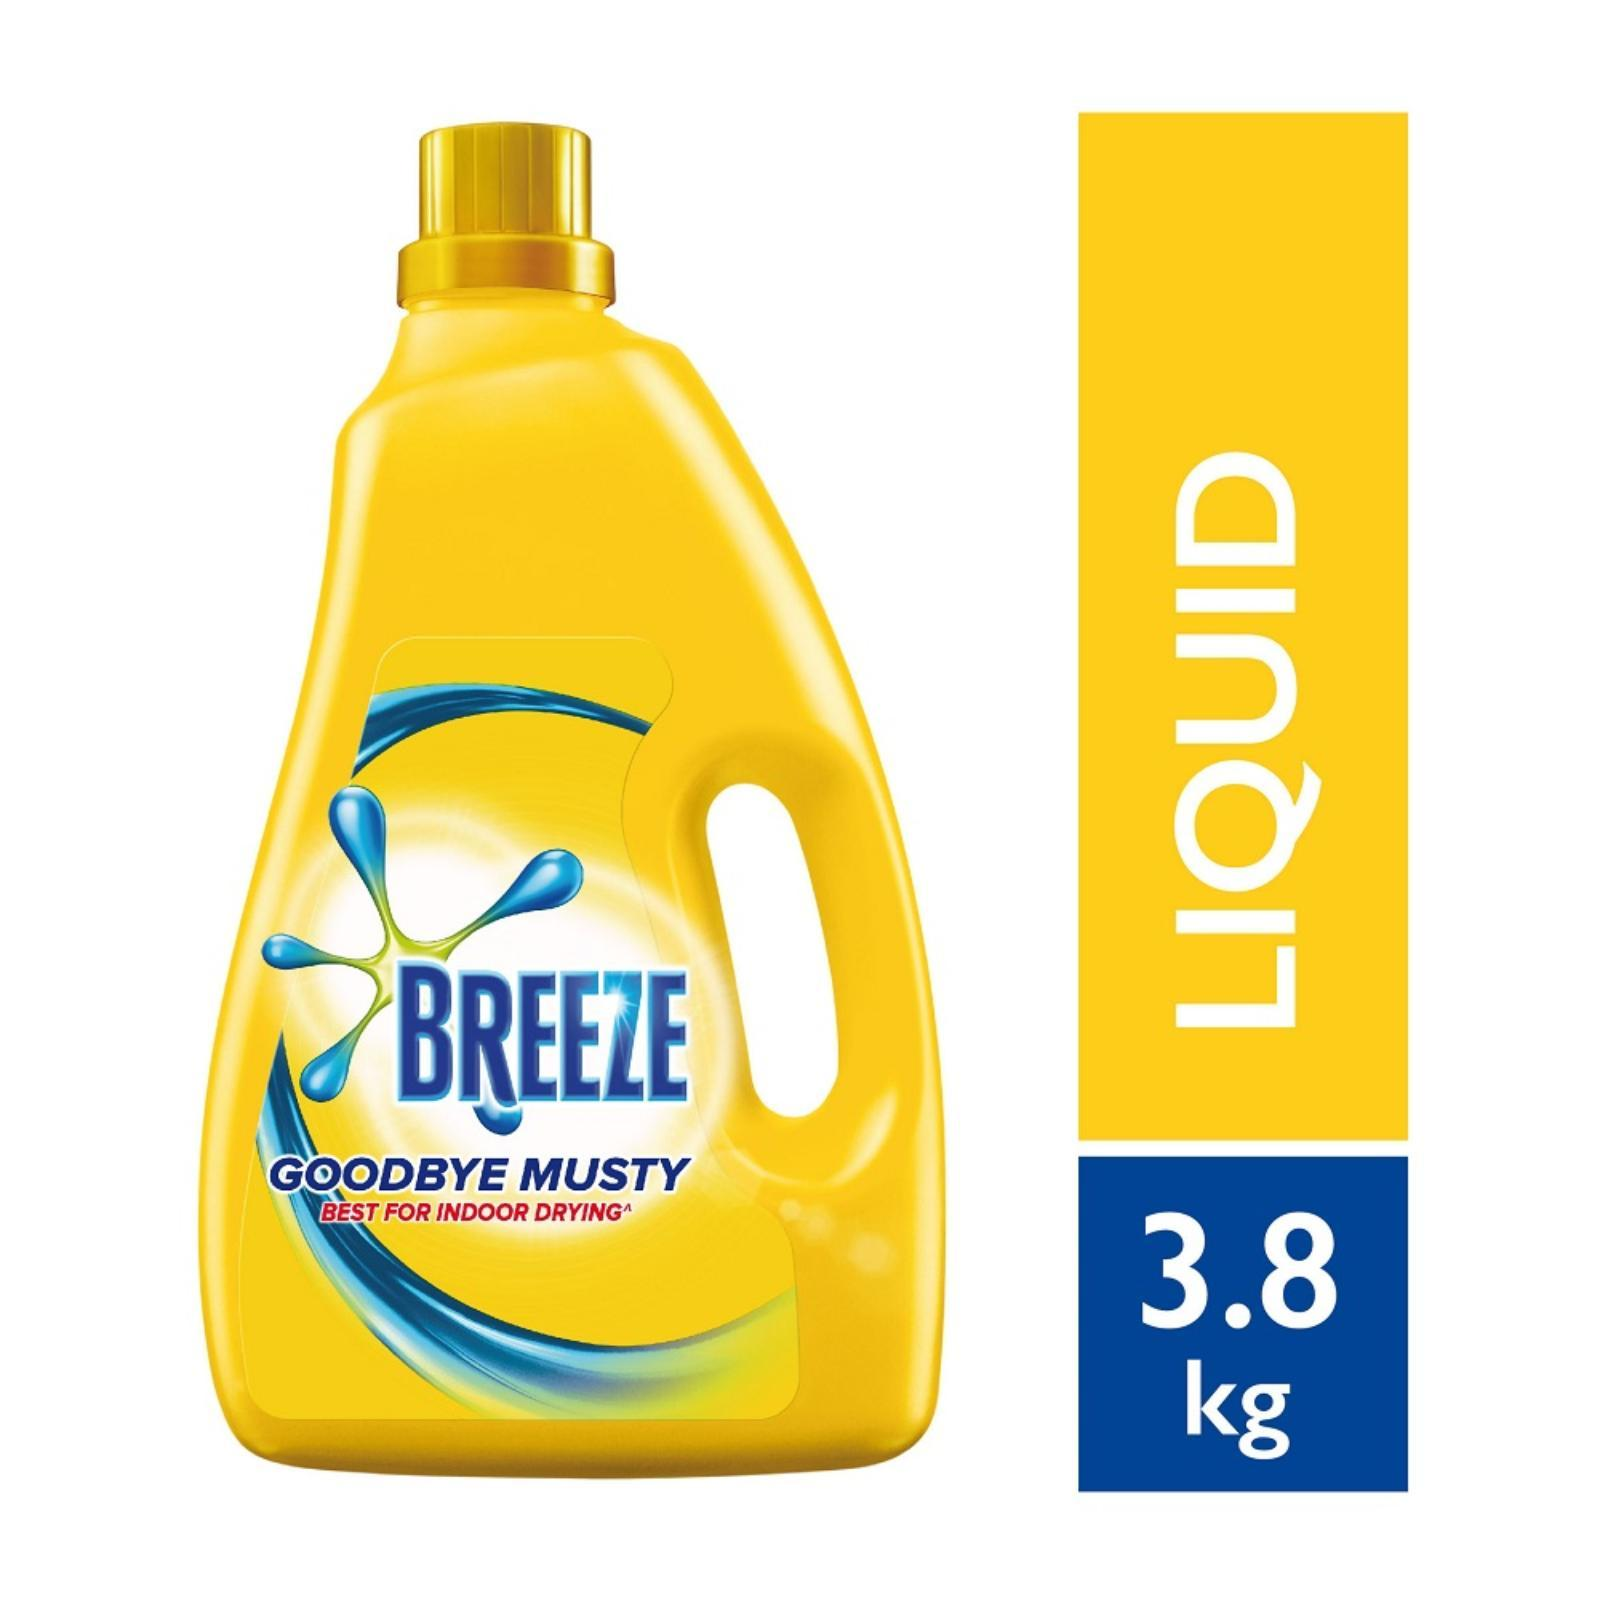 Breeze Goodbye Musty Indoor Drying Liquid Detergent